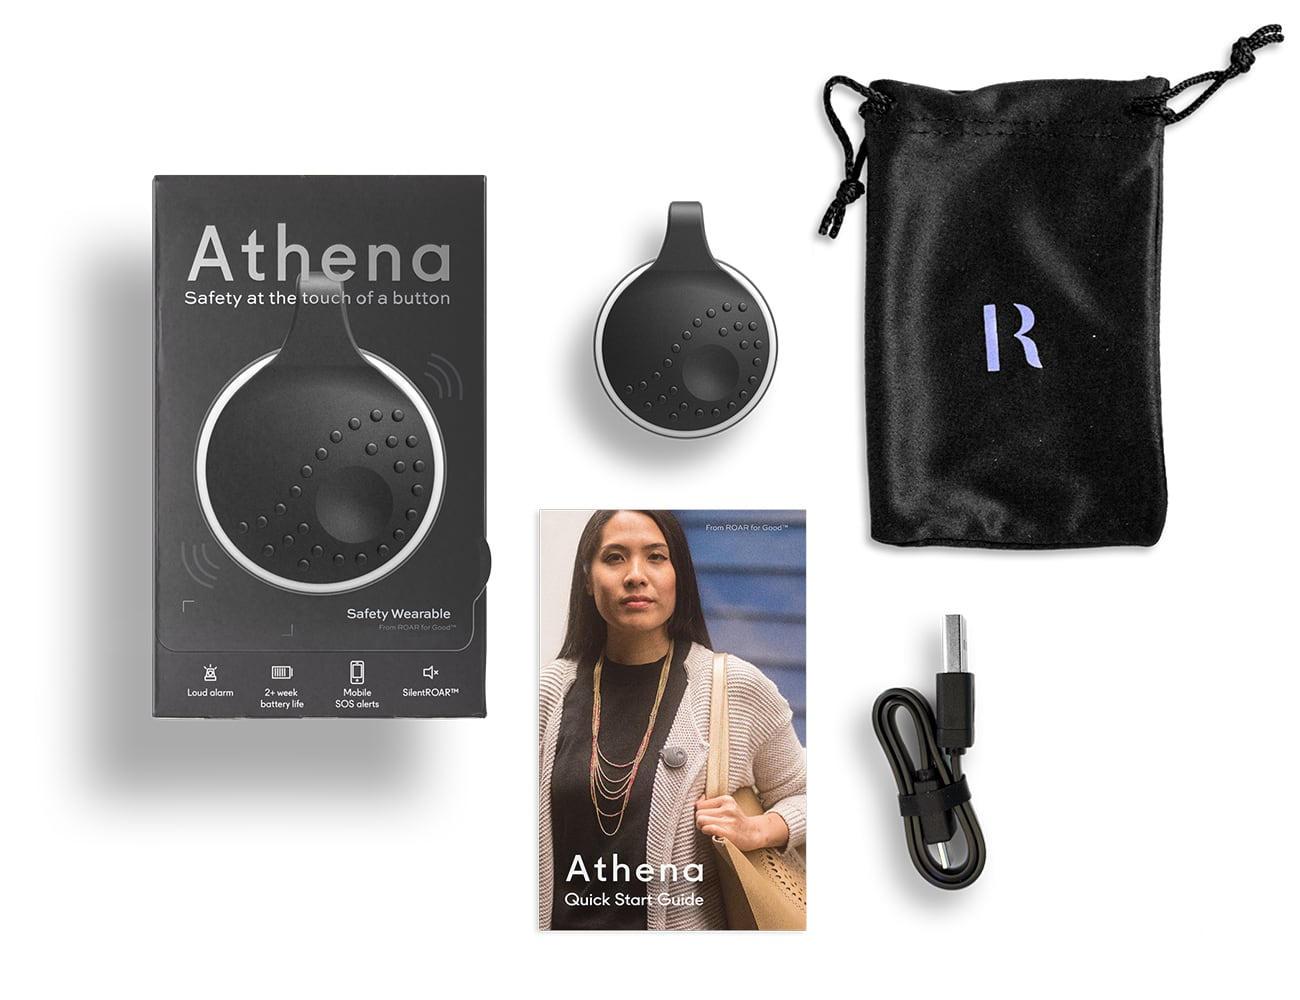 Athena – Smart Safety Wearable